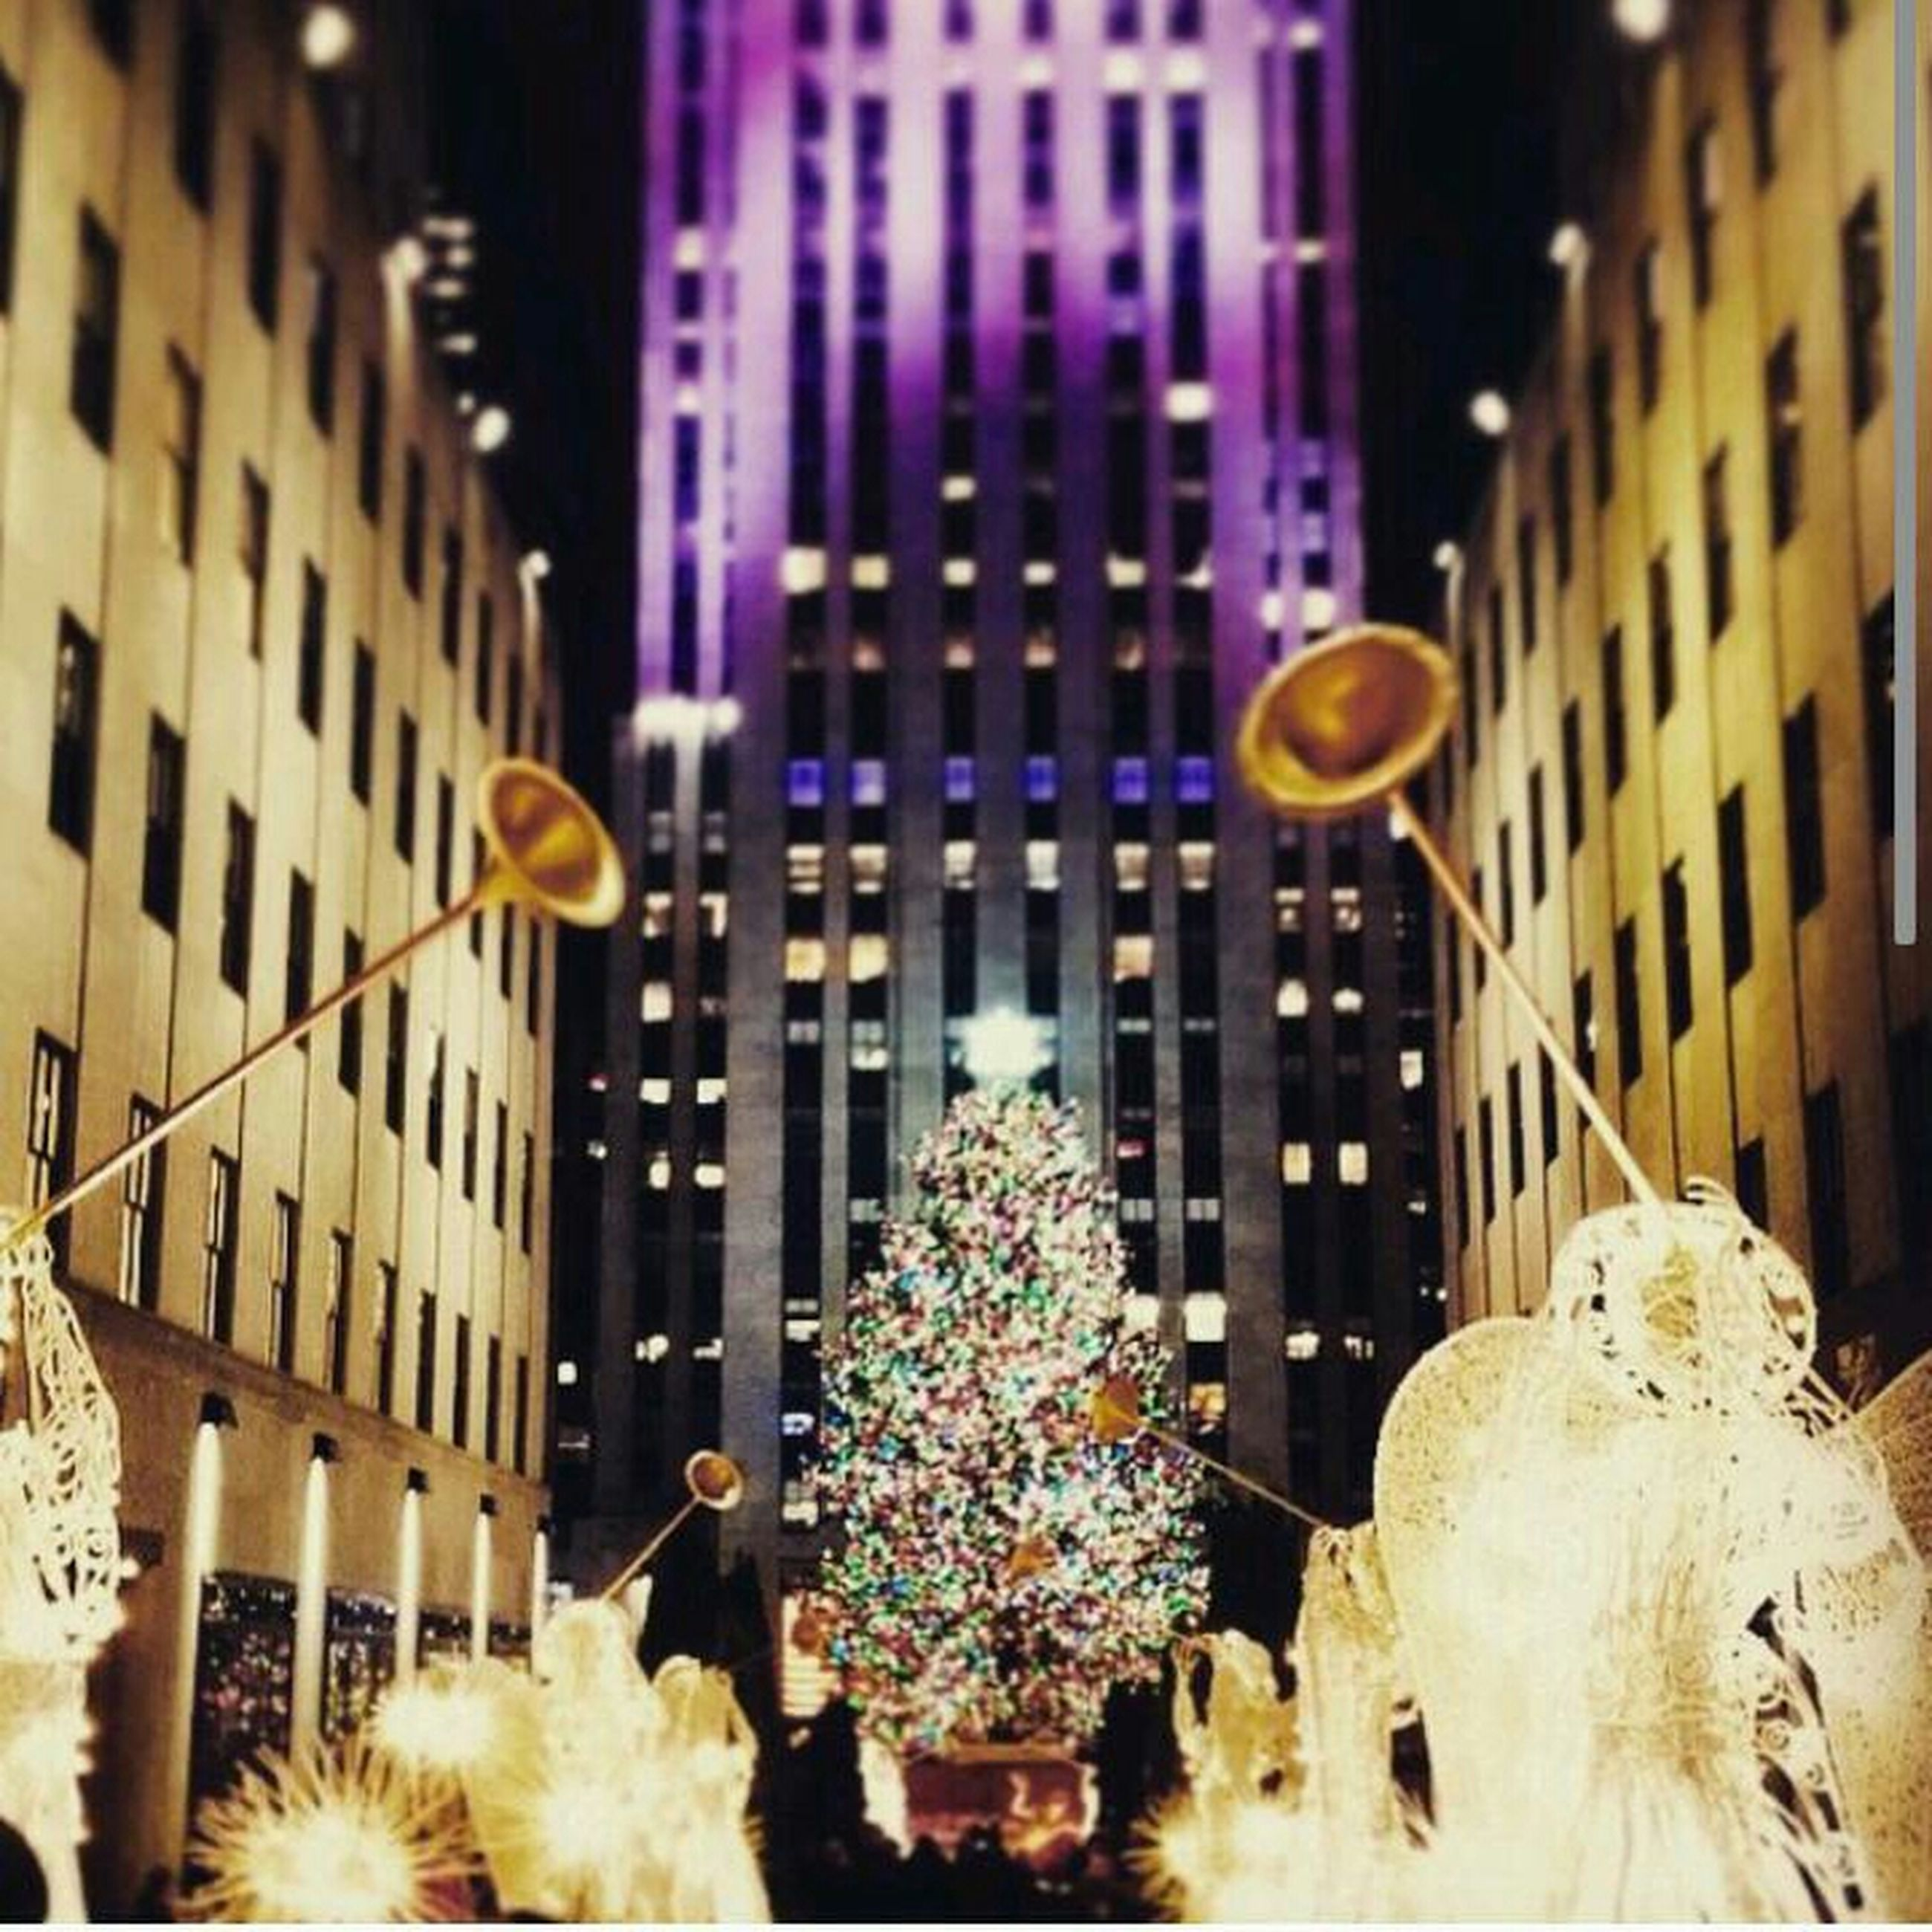 building exterior, architecture, built structure, city, illuminated, building, night, low angle view, celebration, decoration, residential building, lighting equipment, outdoors, street light, tree, residential structure, sculpture, christmas, city life, no people